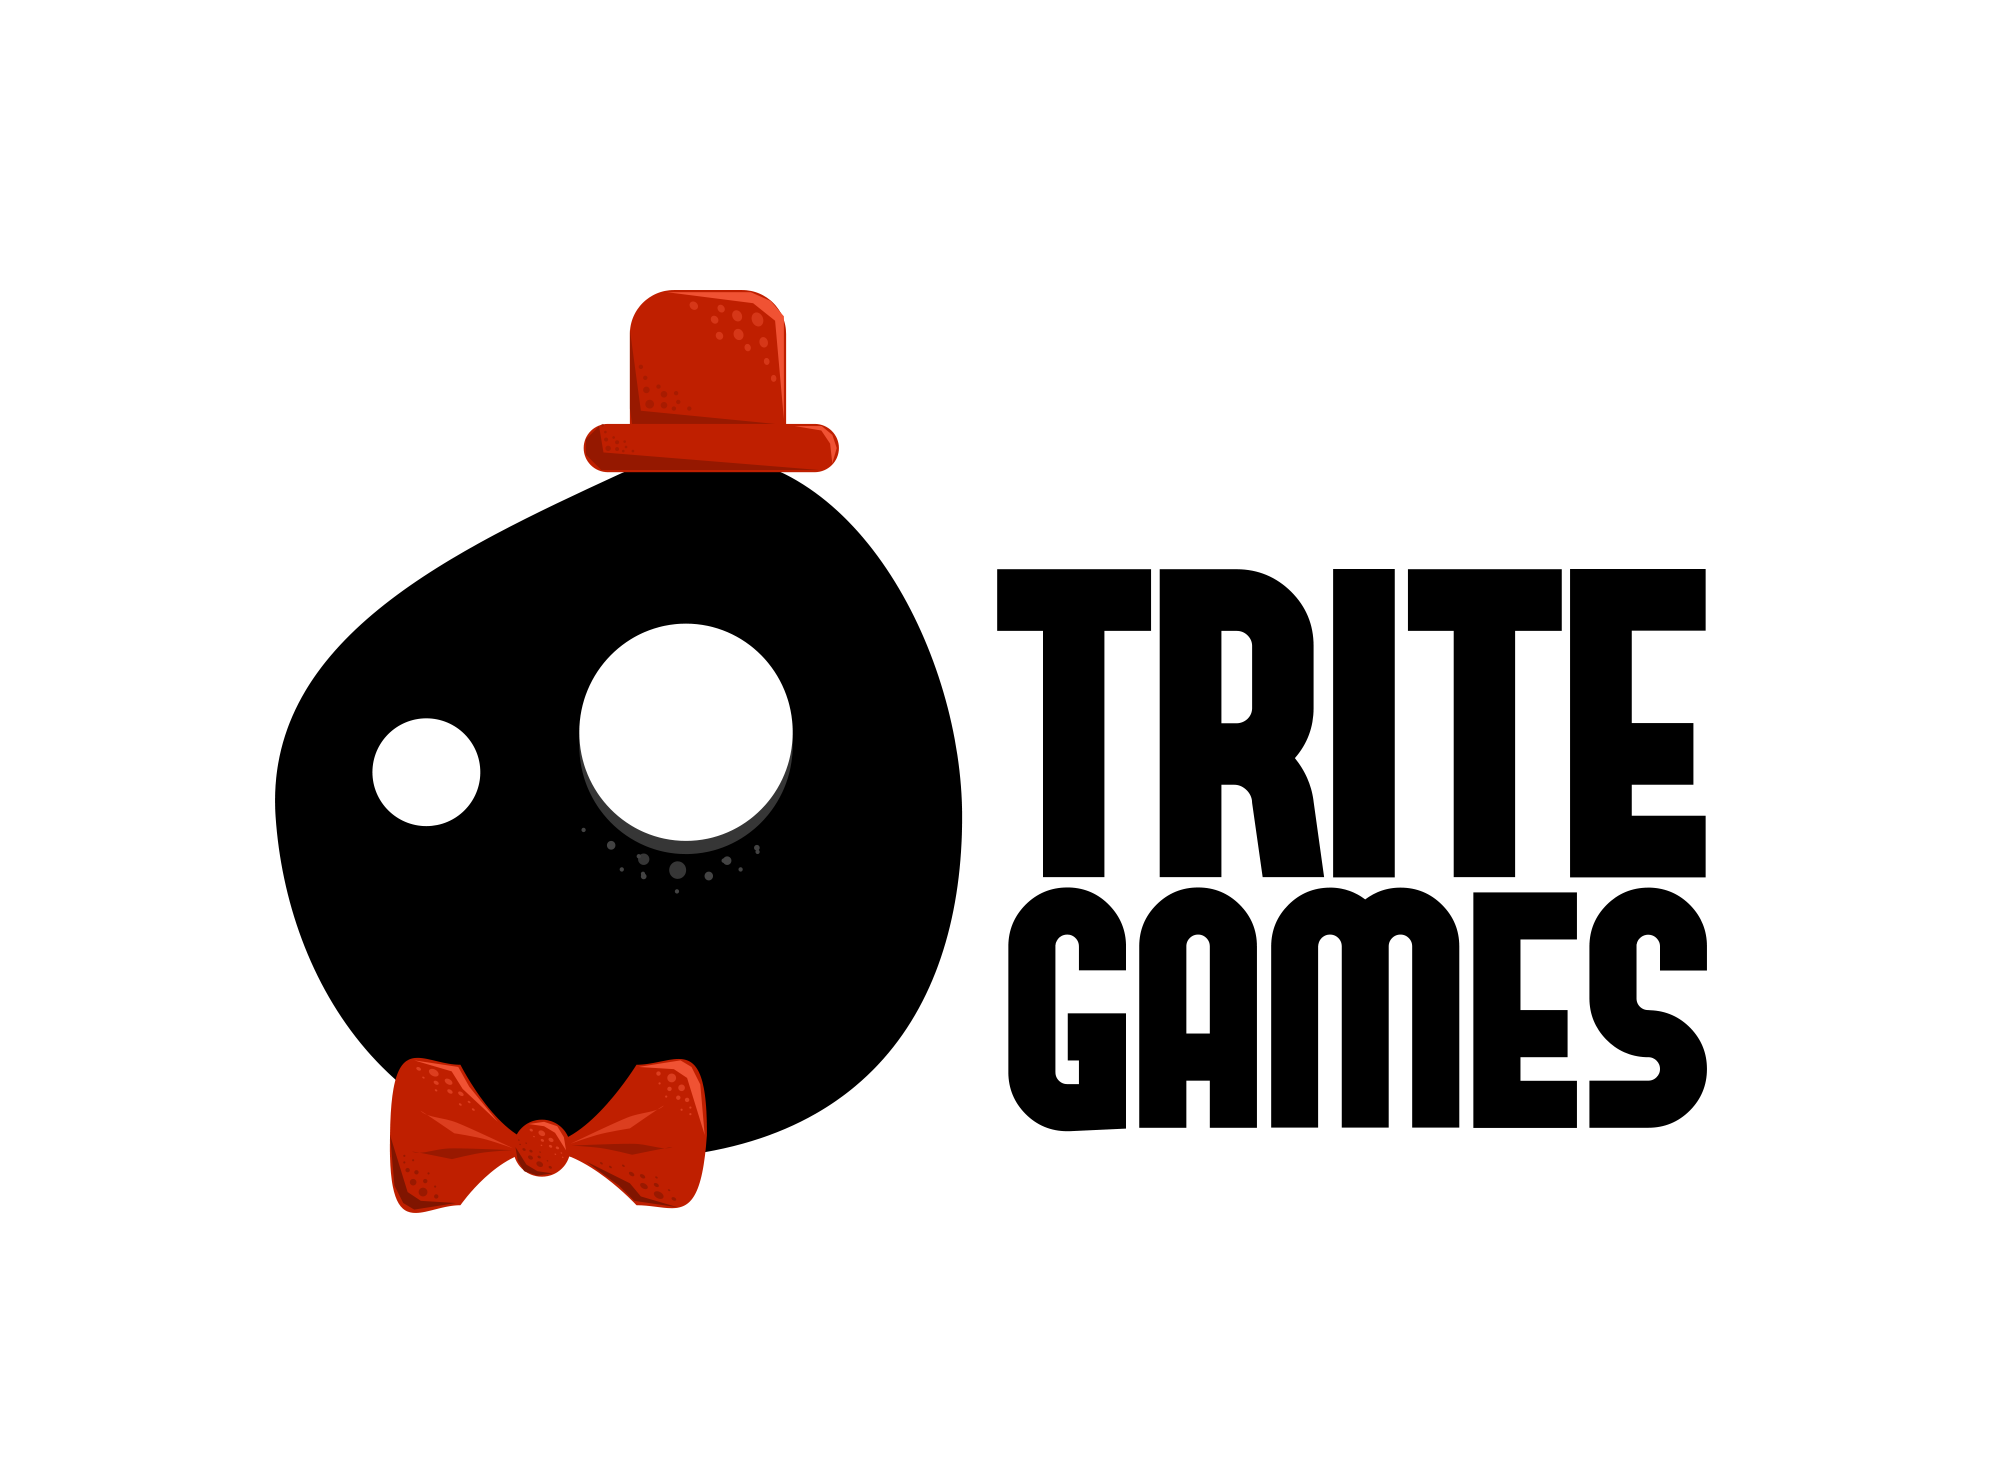 Trite games images. Clipart explosion minefield